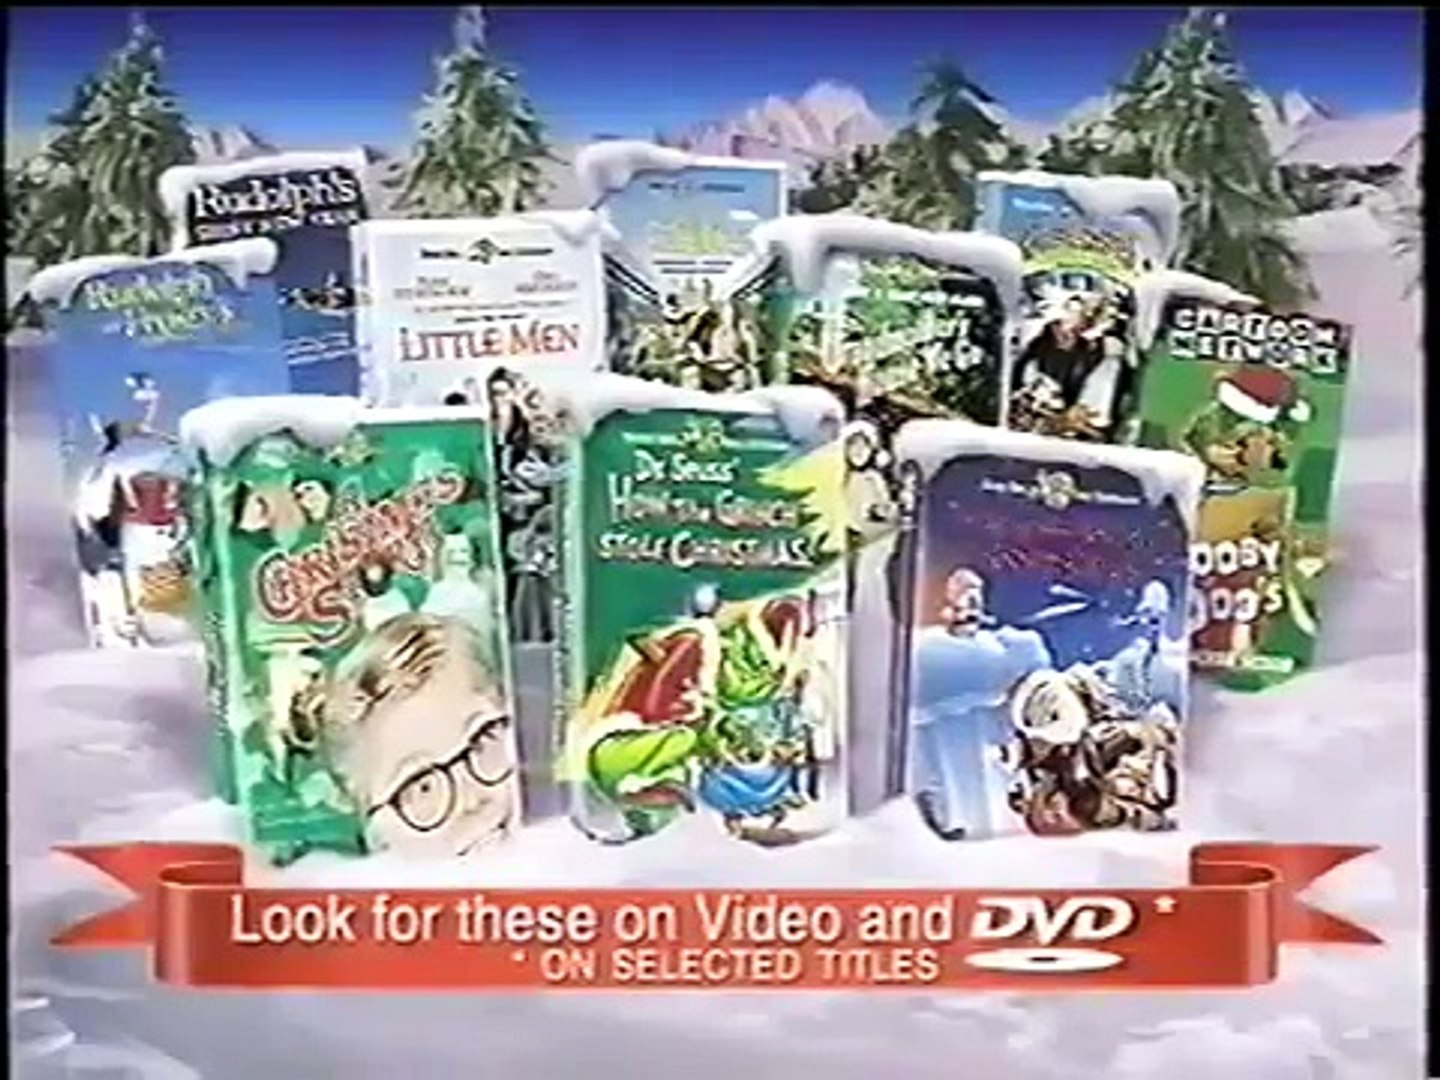 How The Grinch Stole Christmas 2000 Vhs.Opening To How The Grinch Stole Christmas 1999 Vhs